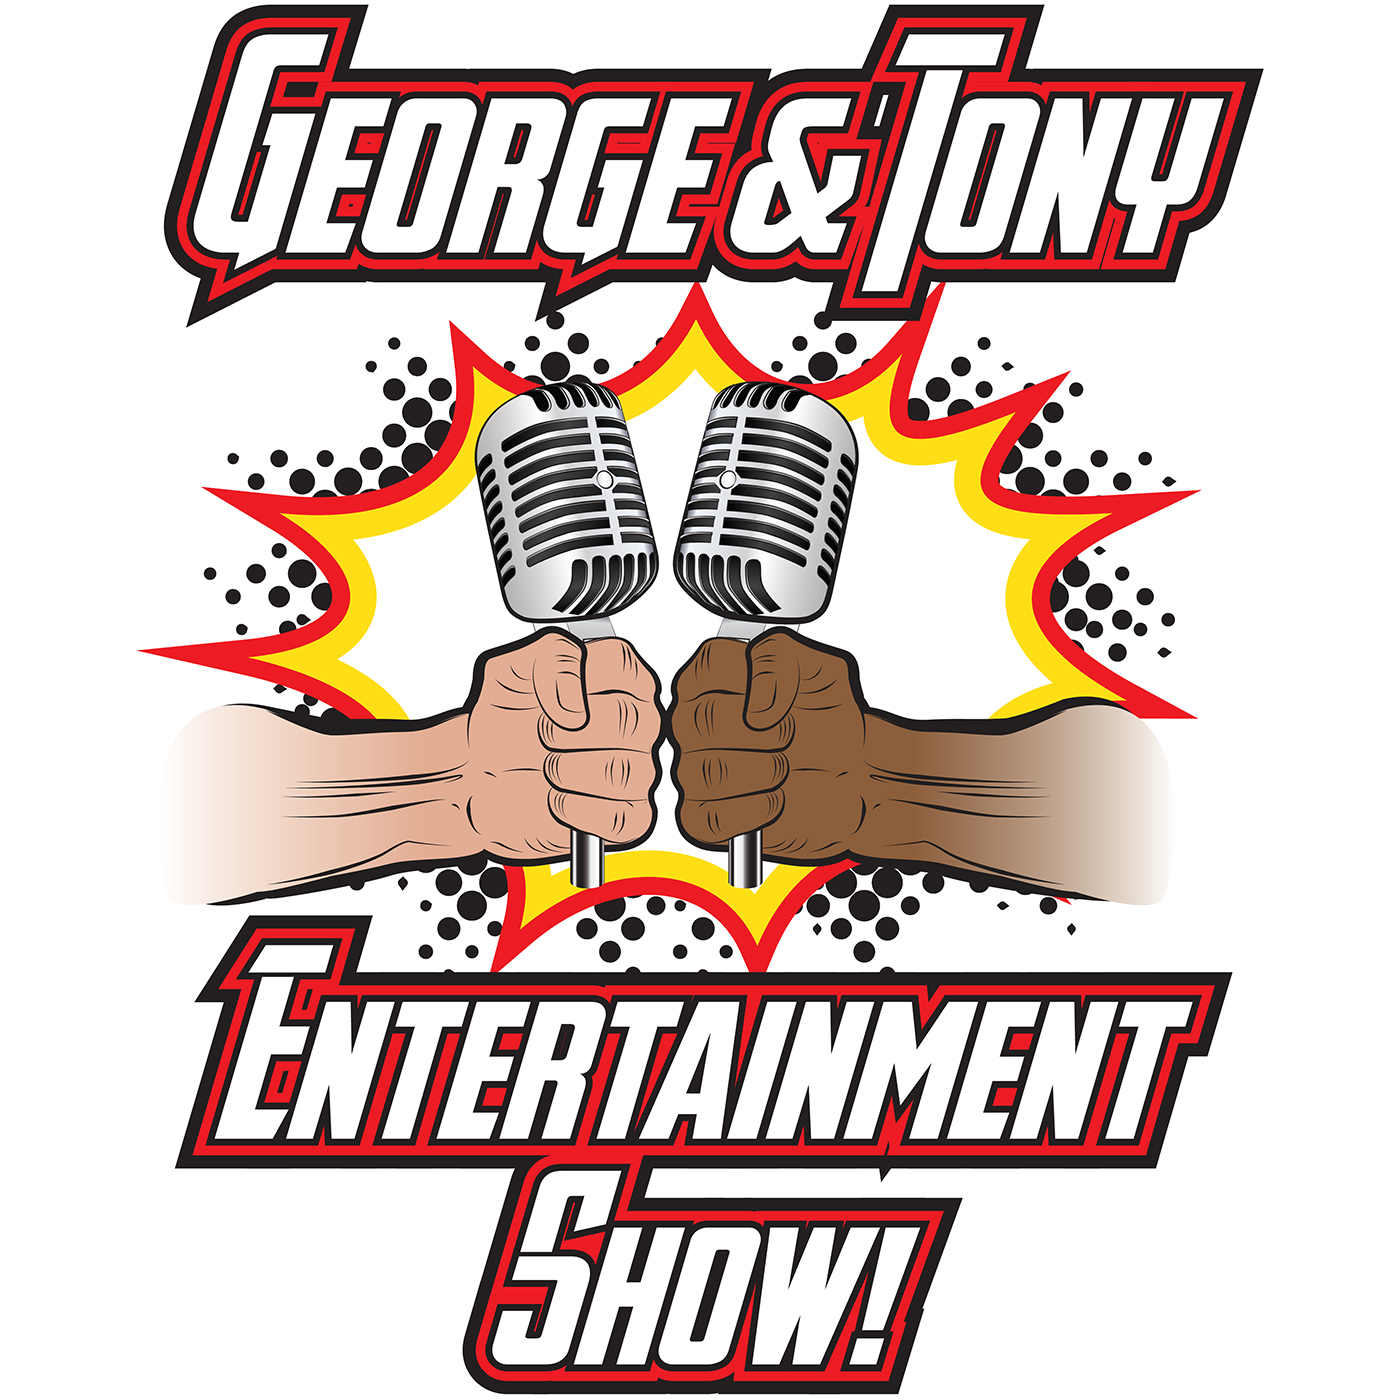 George and Tony Entertainment Show #60